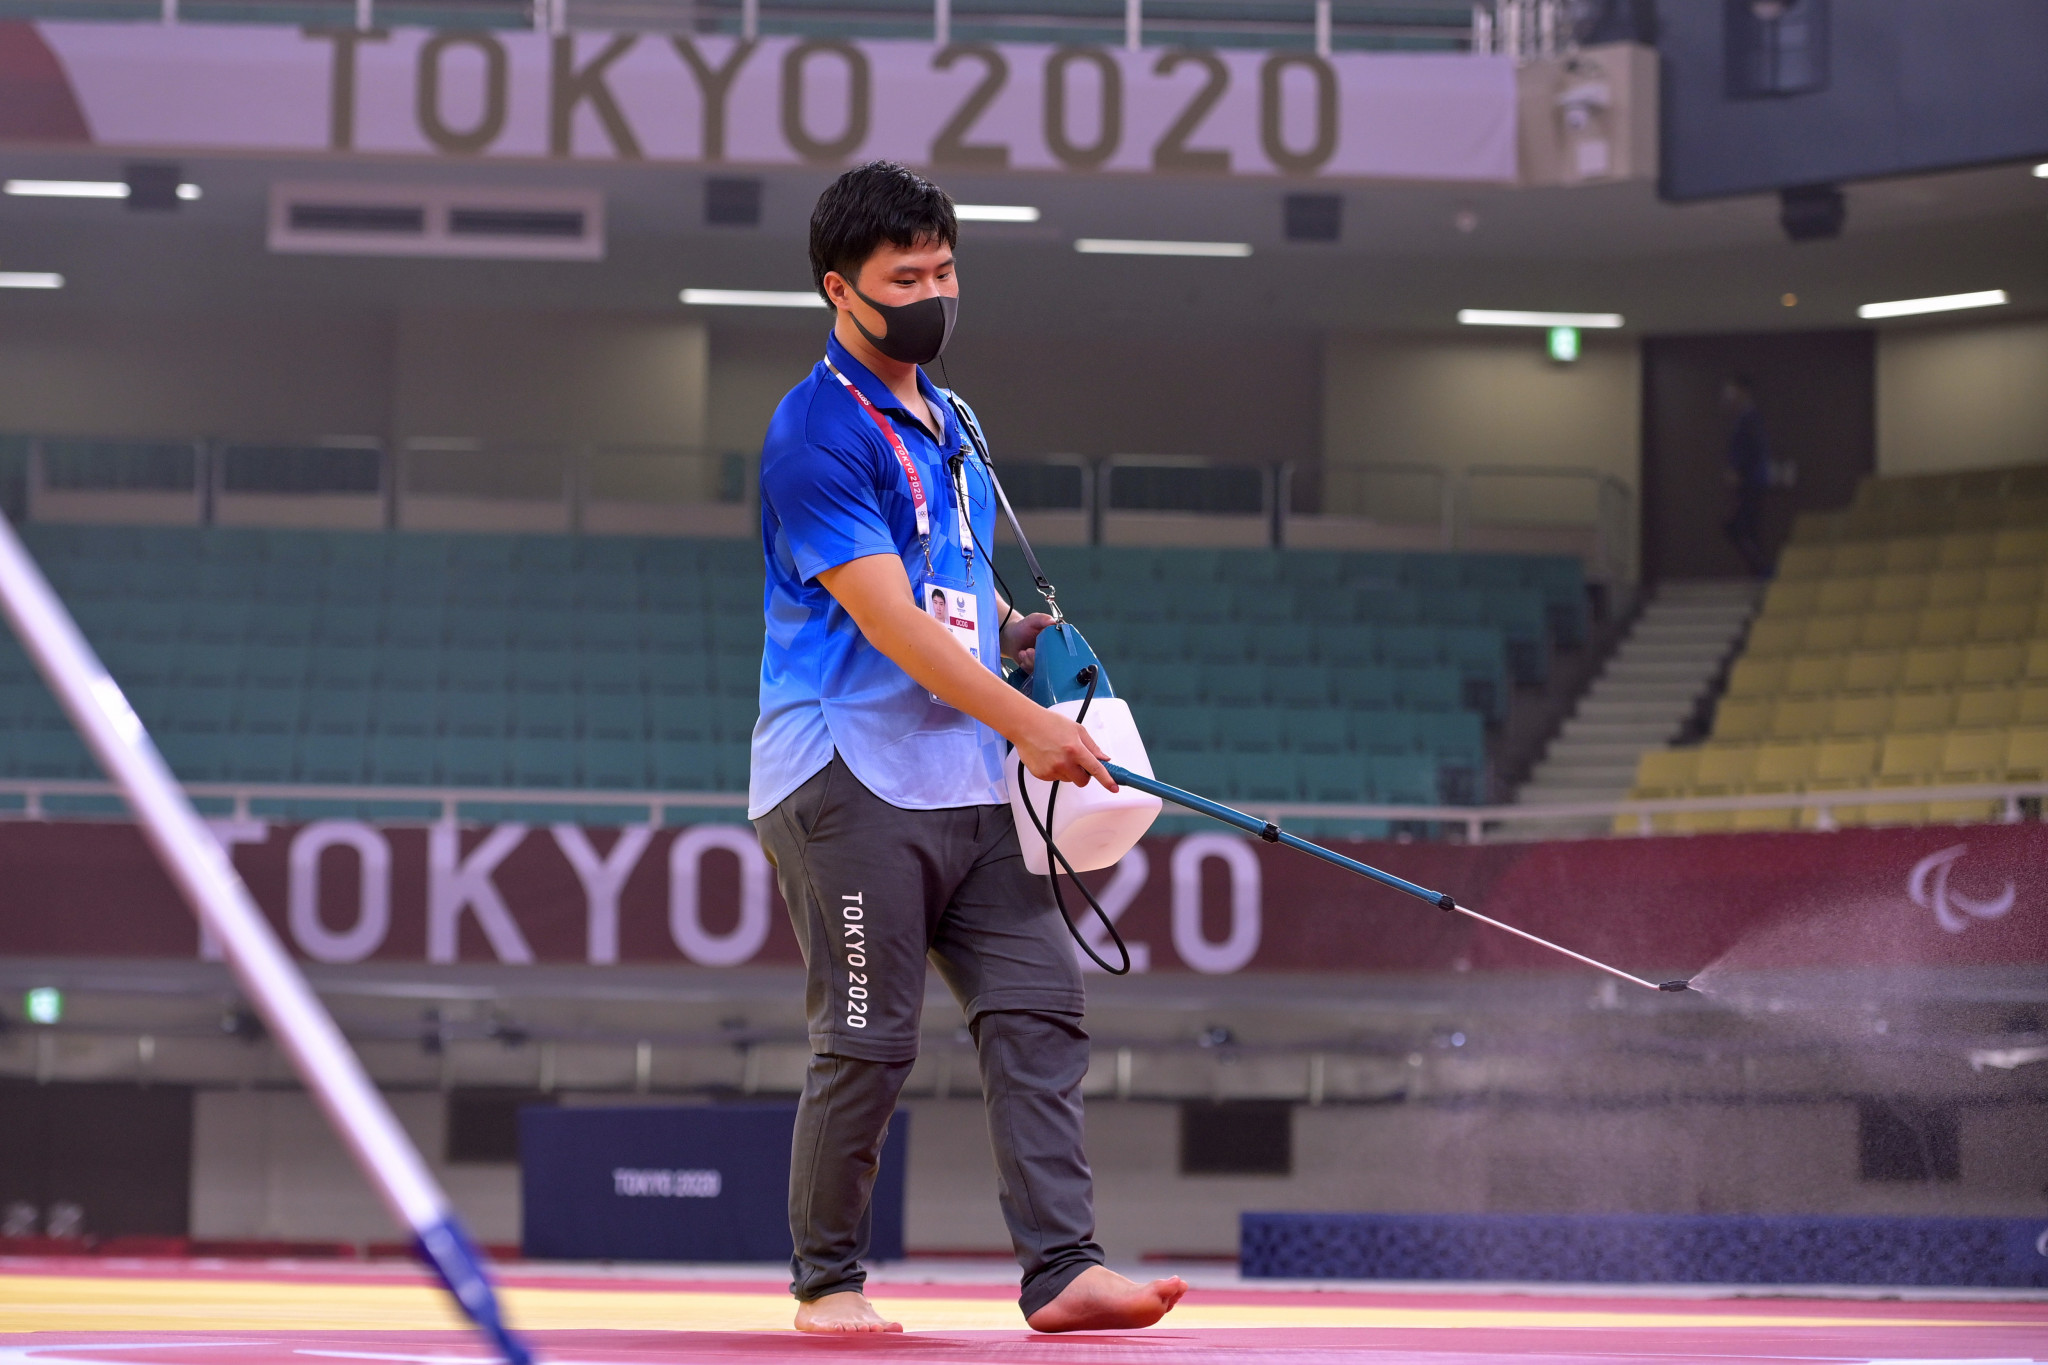 Tokyo 2020 staff spray the mats at the Nippon Budokan as part of the organisation's COVID-19 cleaning protocols ©Getty Images